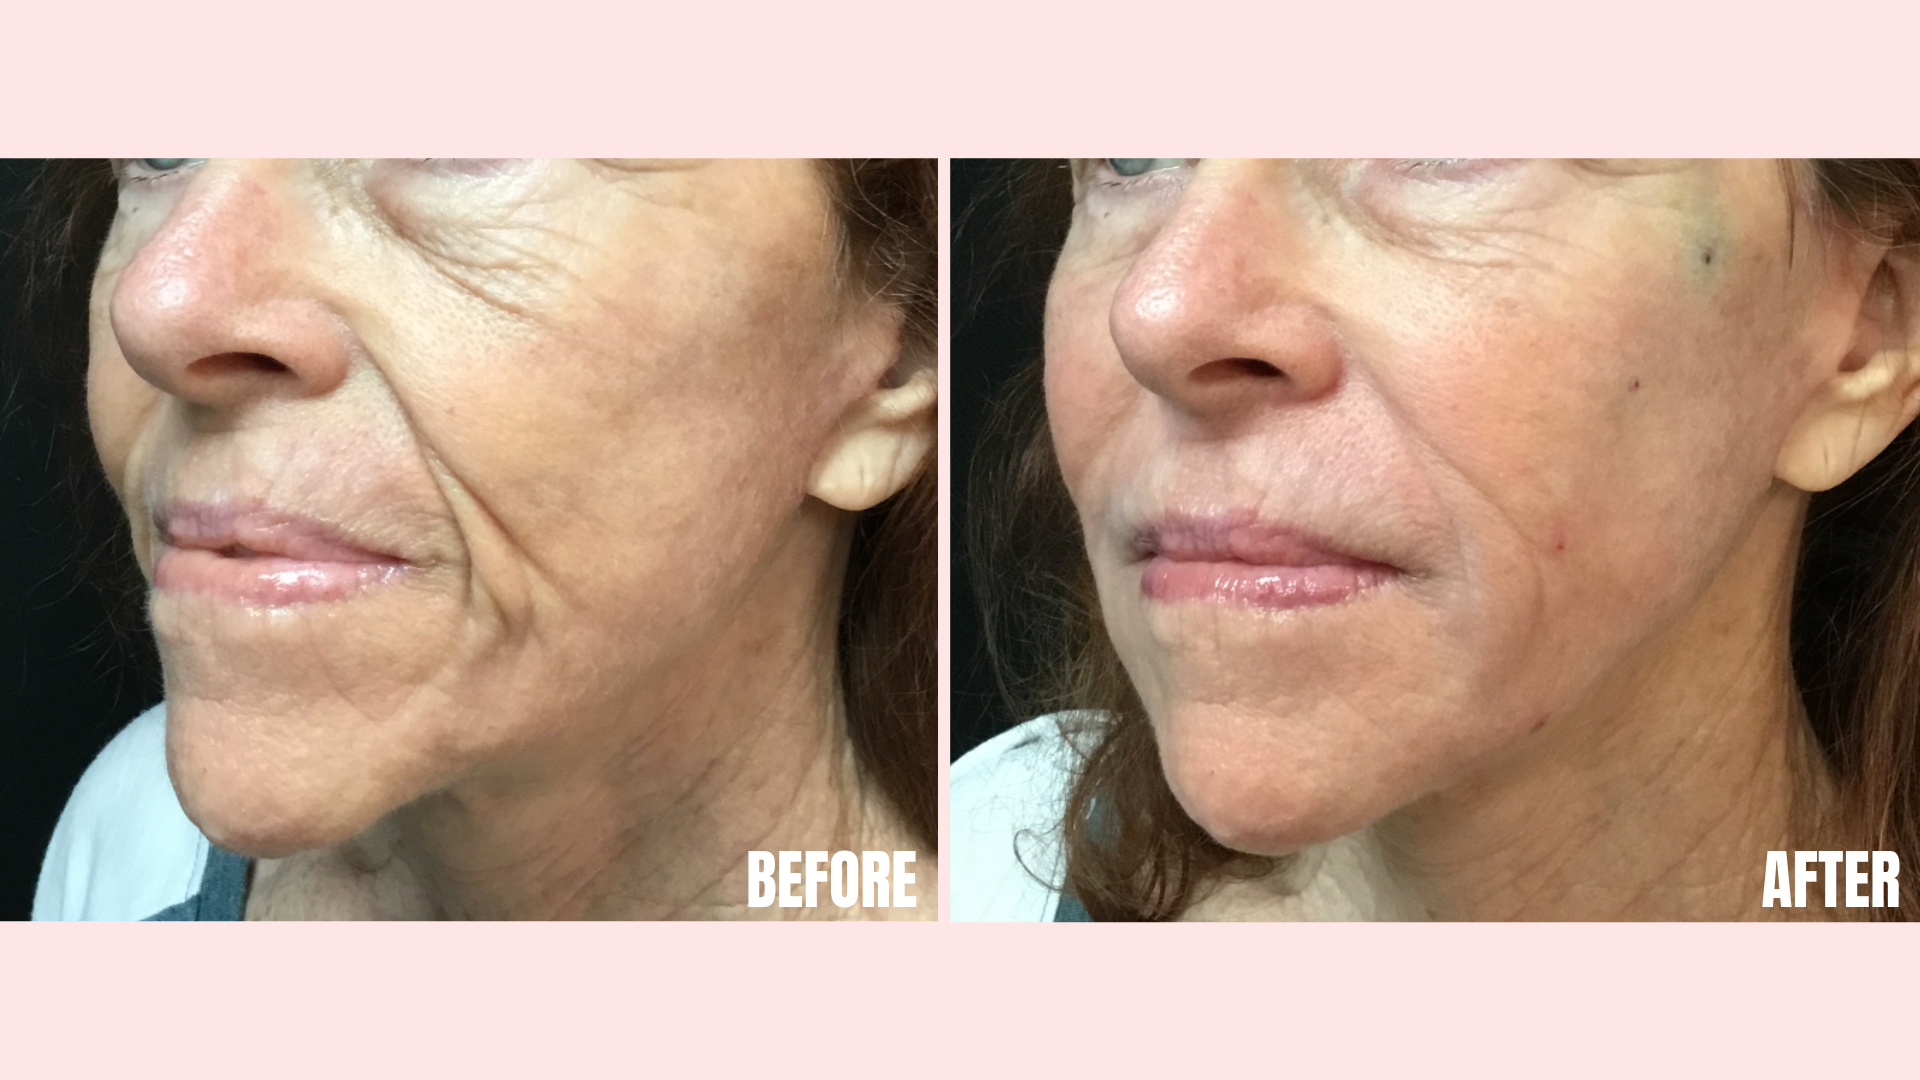 Bellafill in the Nasolabial Folds, Marionette Lines, Tear Troughs, and Jawline.